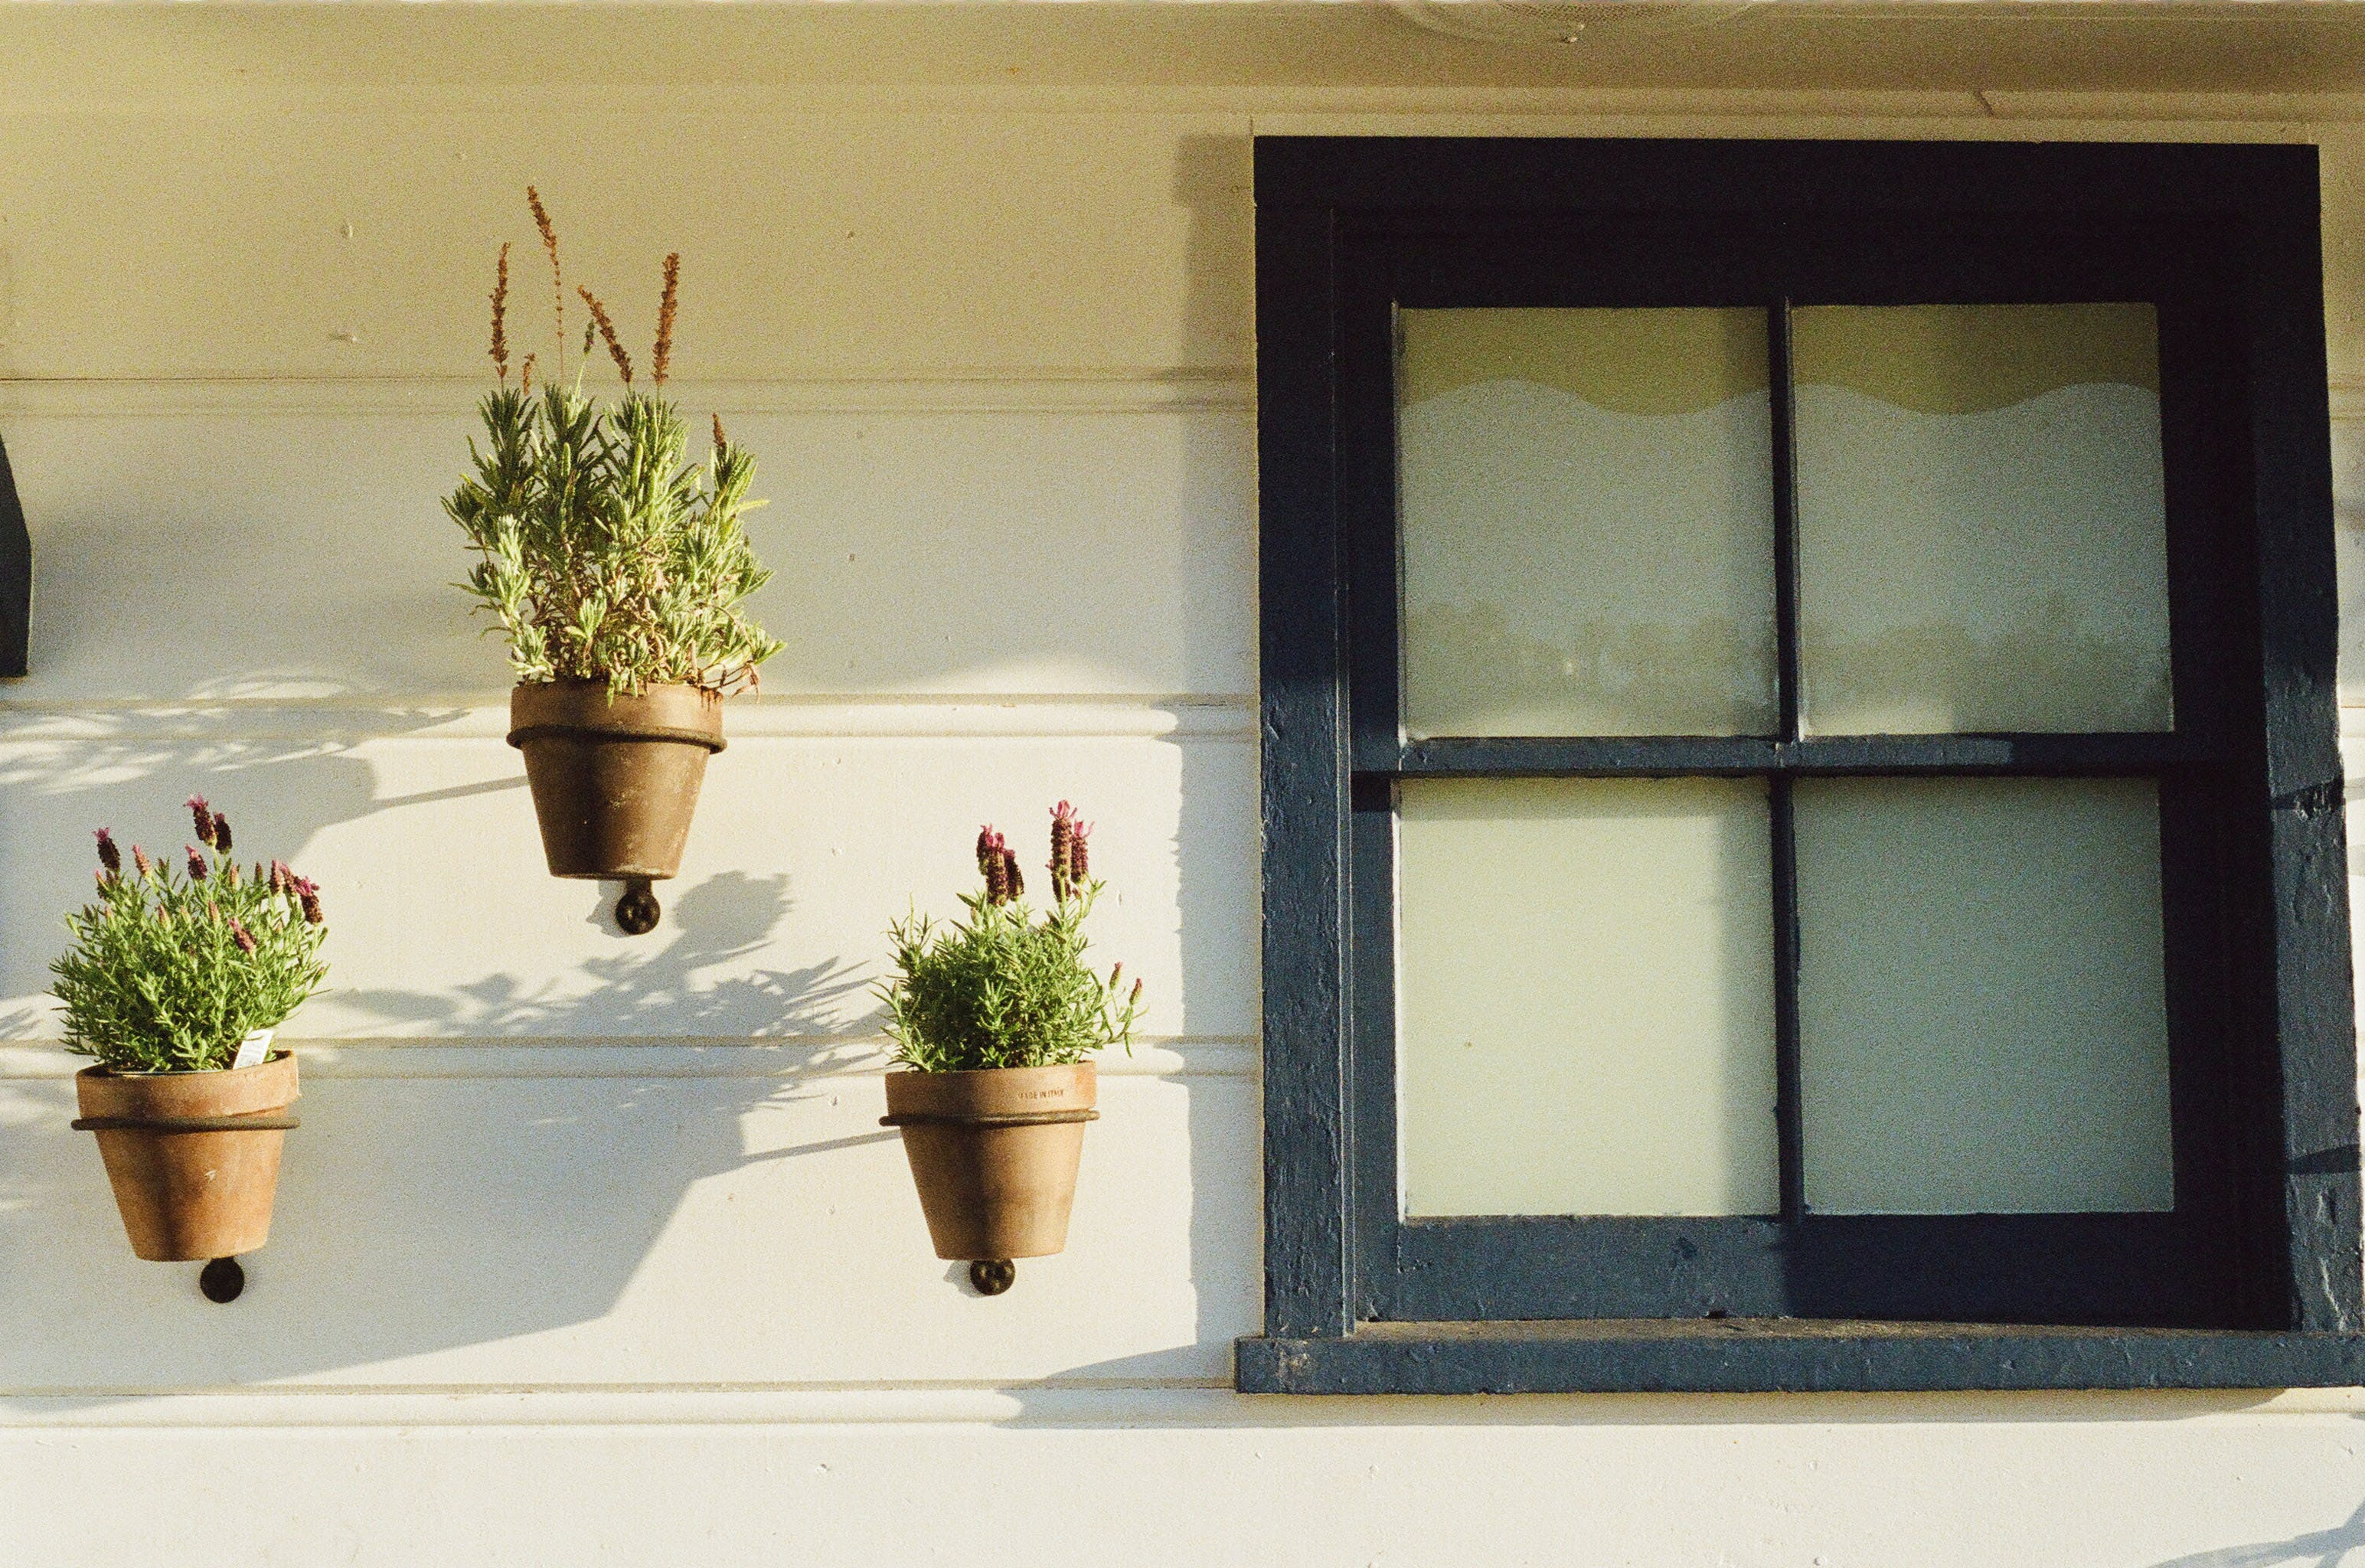 Free stock photo of house, window, flowerpots